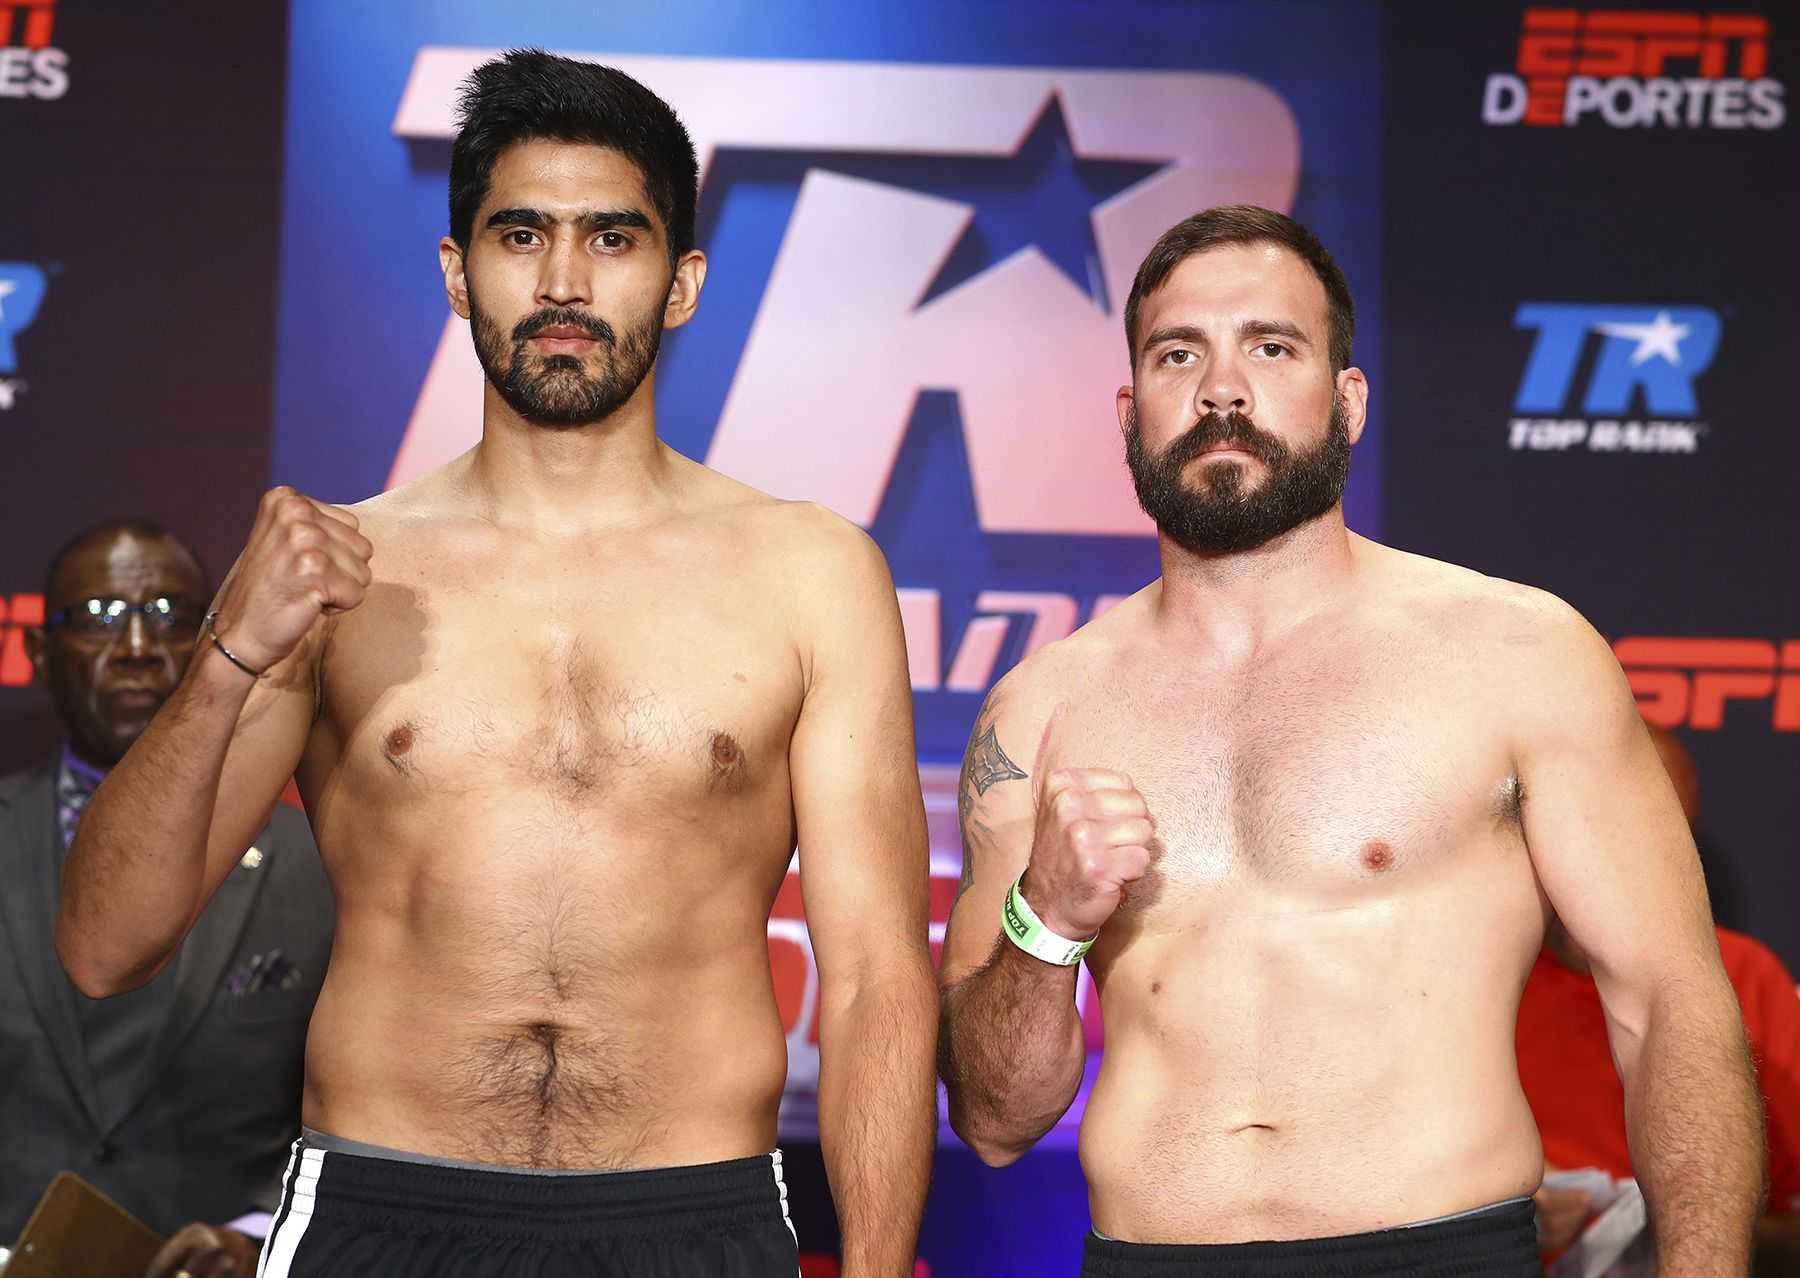 Vijender Singh vs Mike Snider - Where to watch, time, Channel - Singh